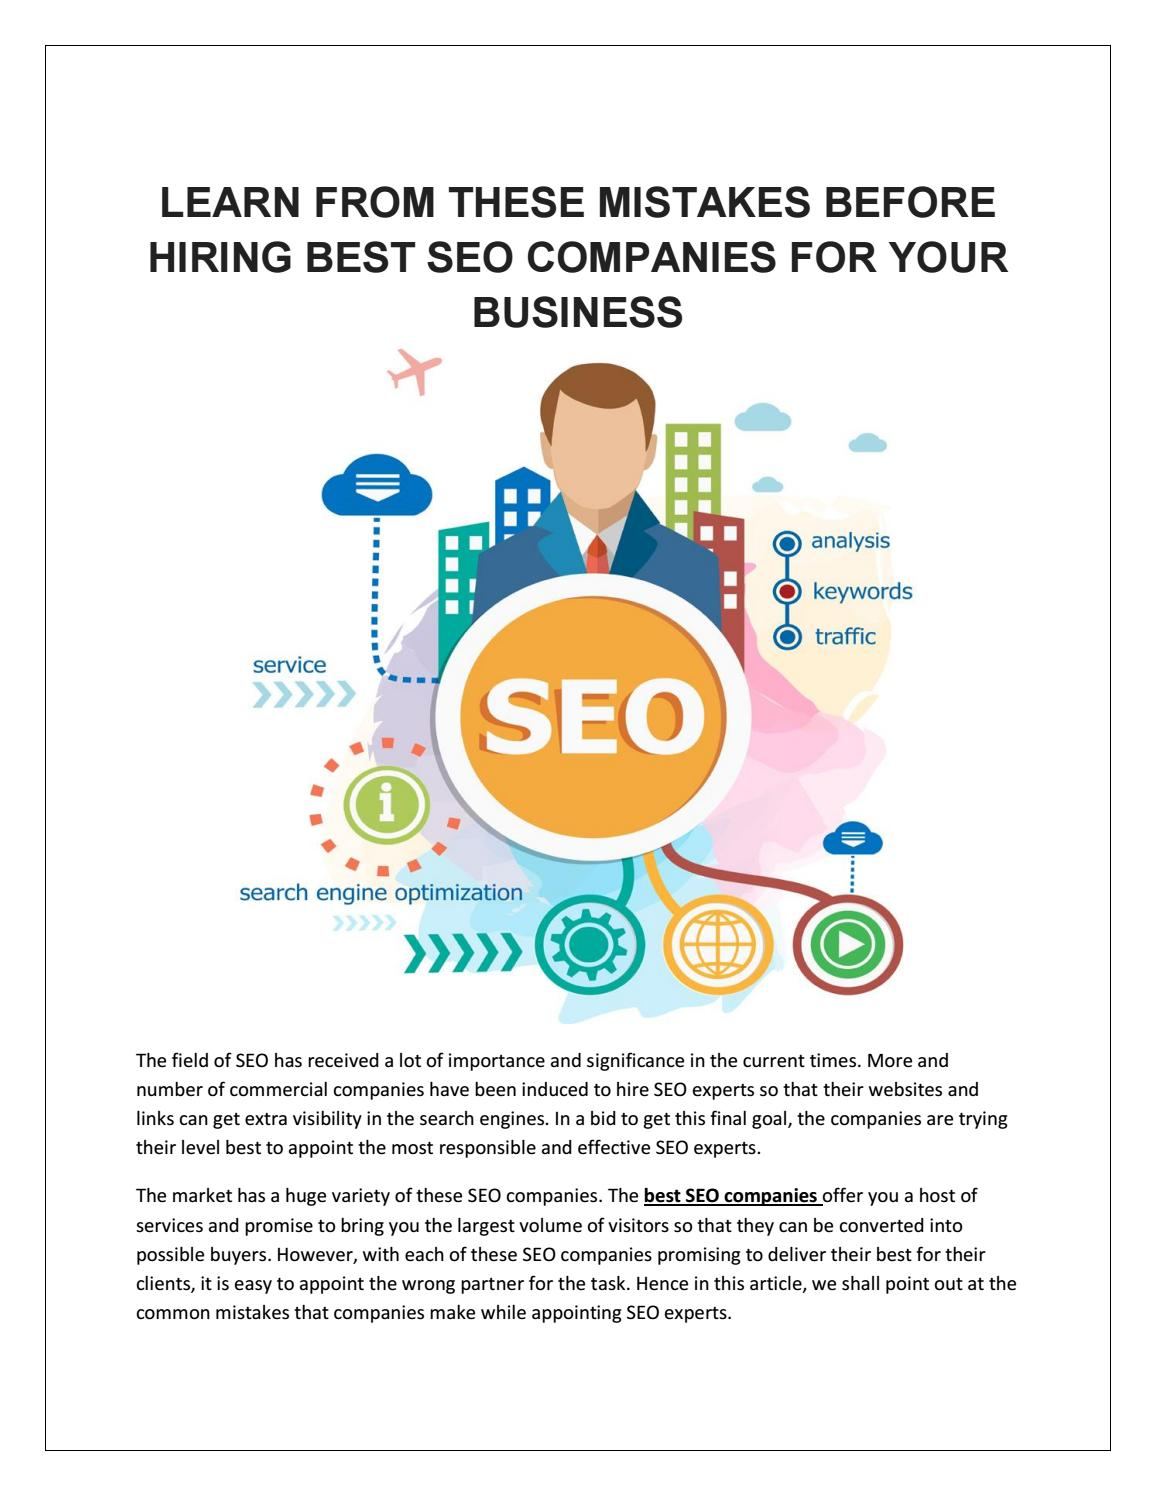 Why Some Companies Are Trying To Hire >> Learn From These Mistakes Before Hiring Best Seo Companies For Your Business